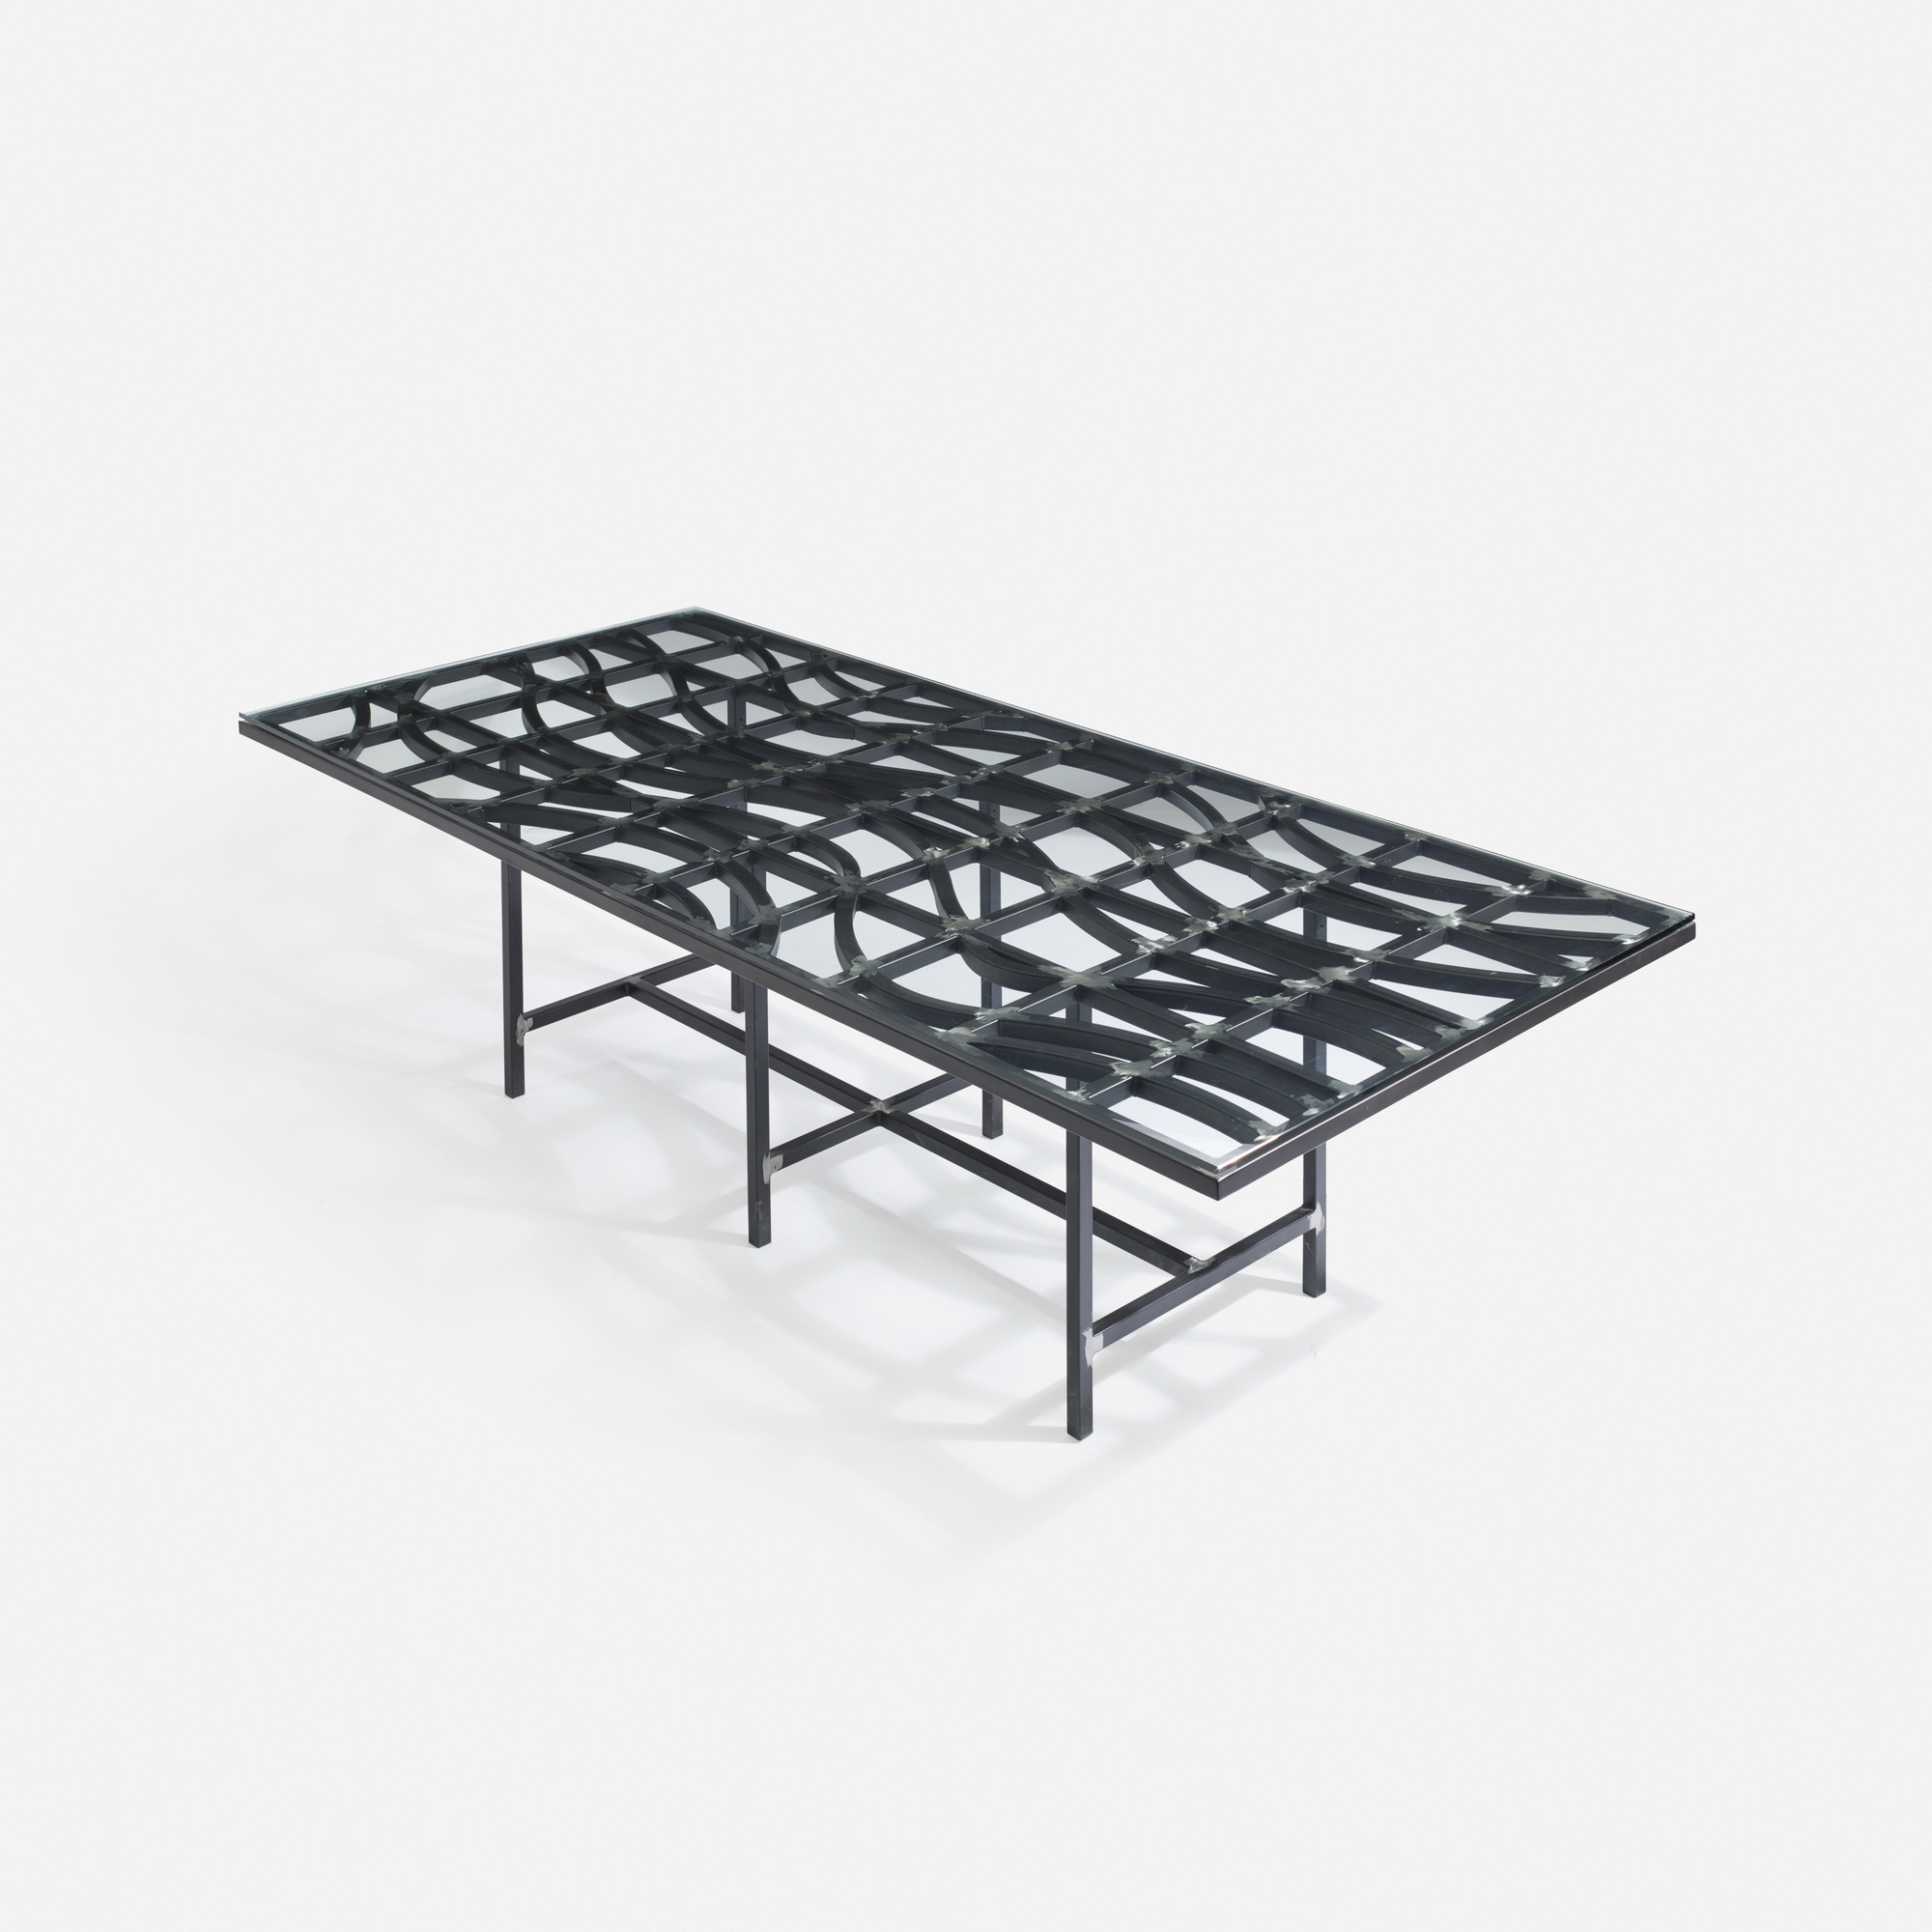 320: Sol LeWitt / dining table (2 of 3)